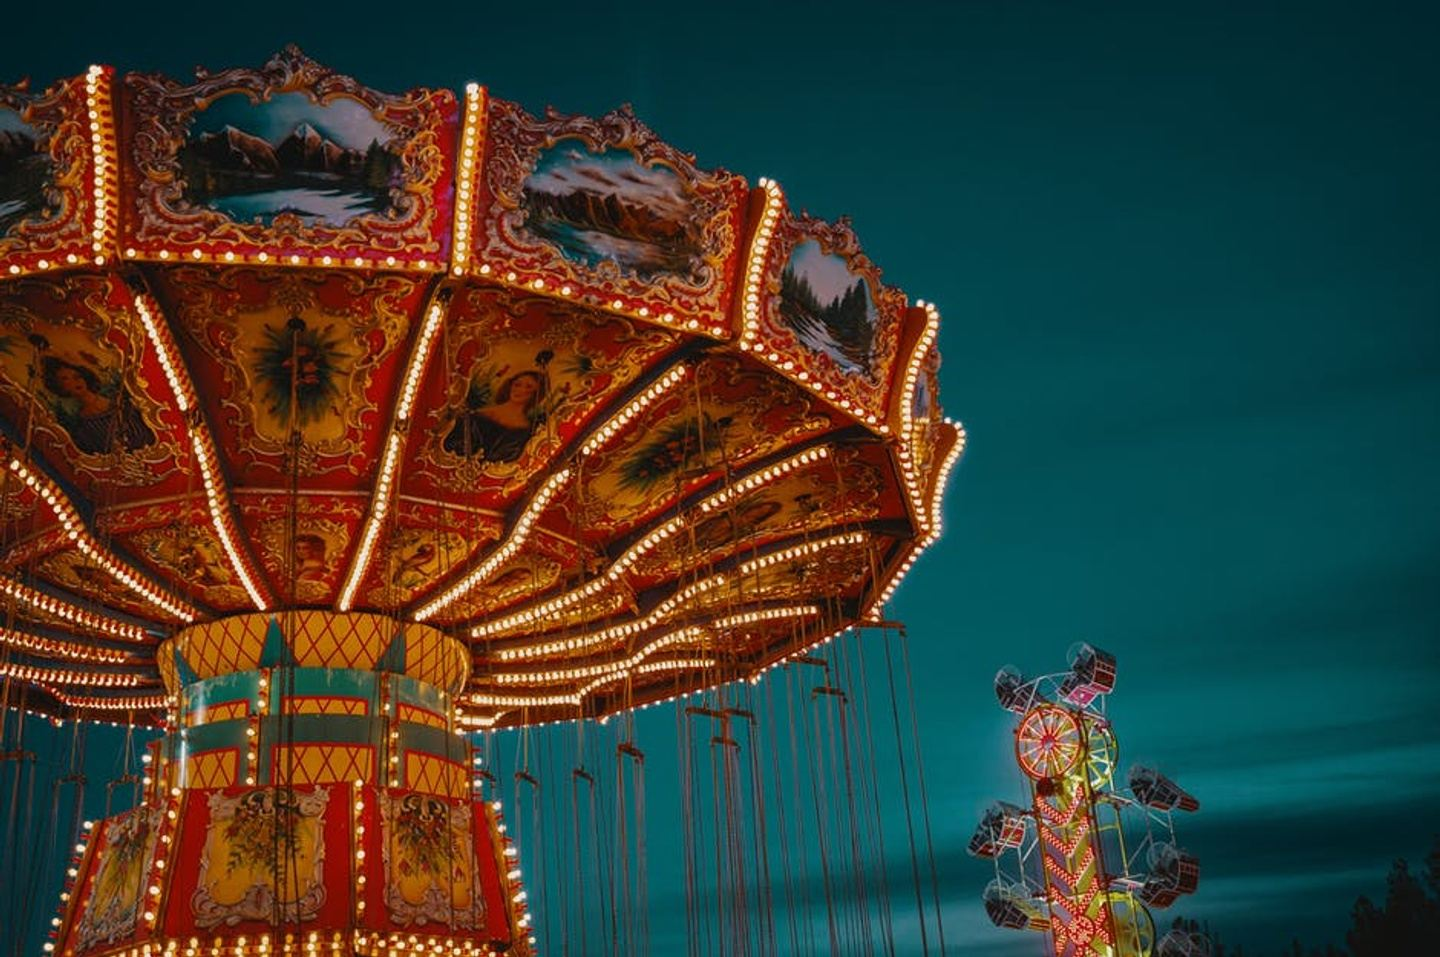 7 Things to Bring to an Amusement Park to Make the Most Your Trip